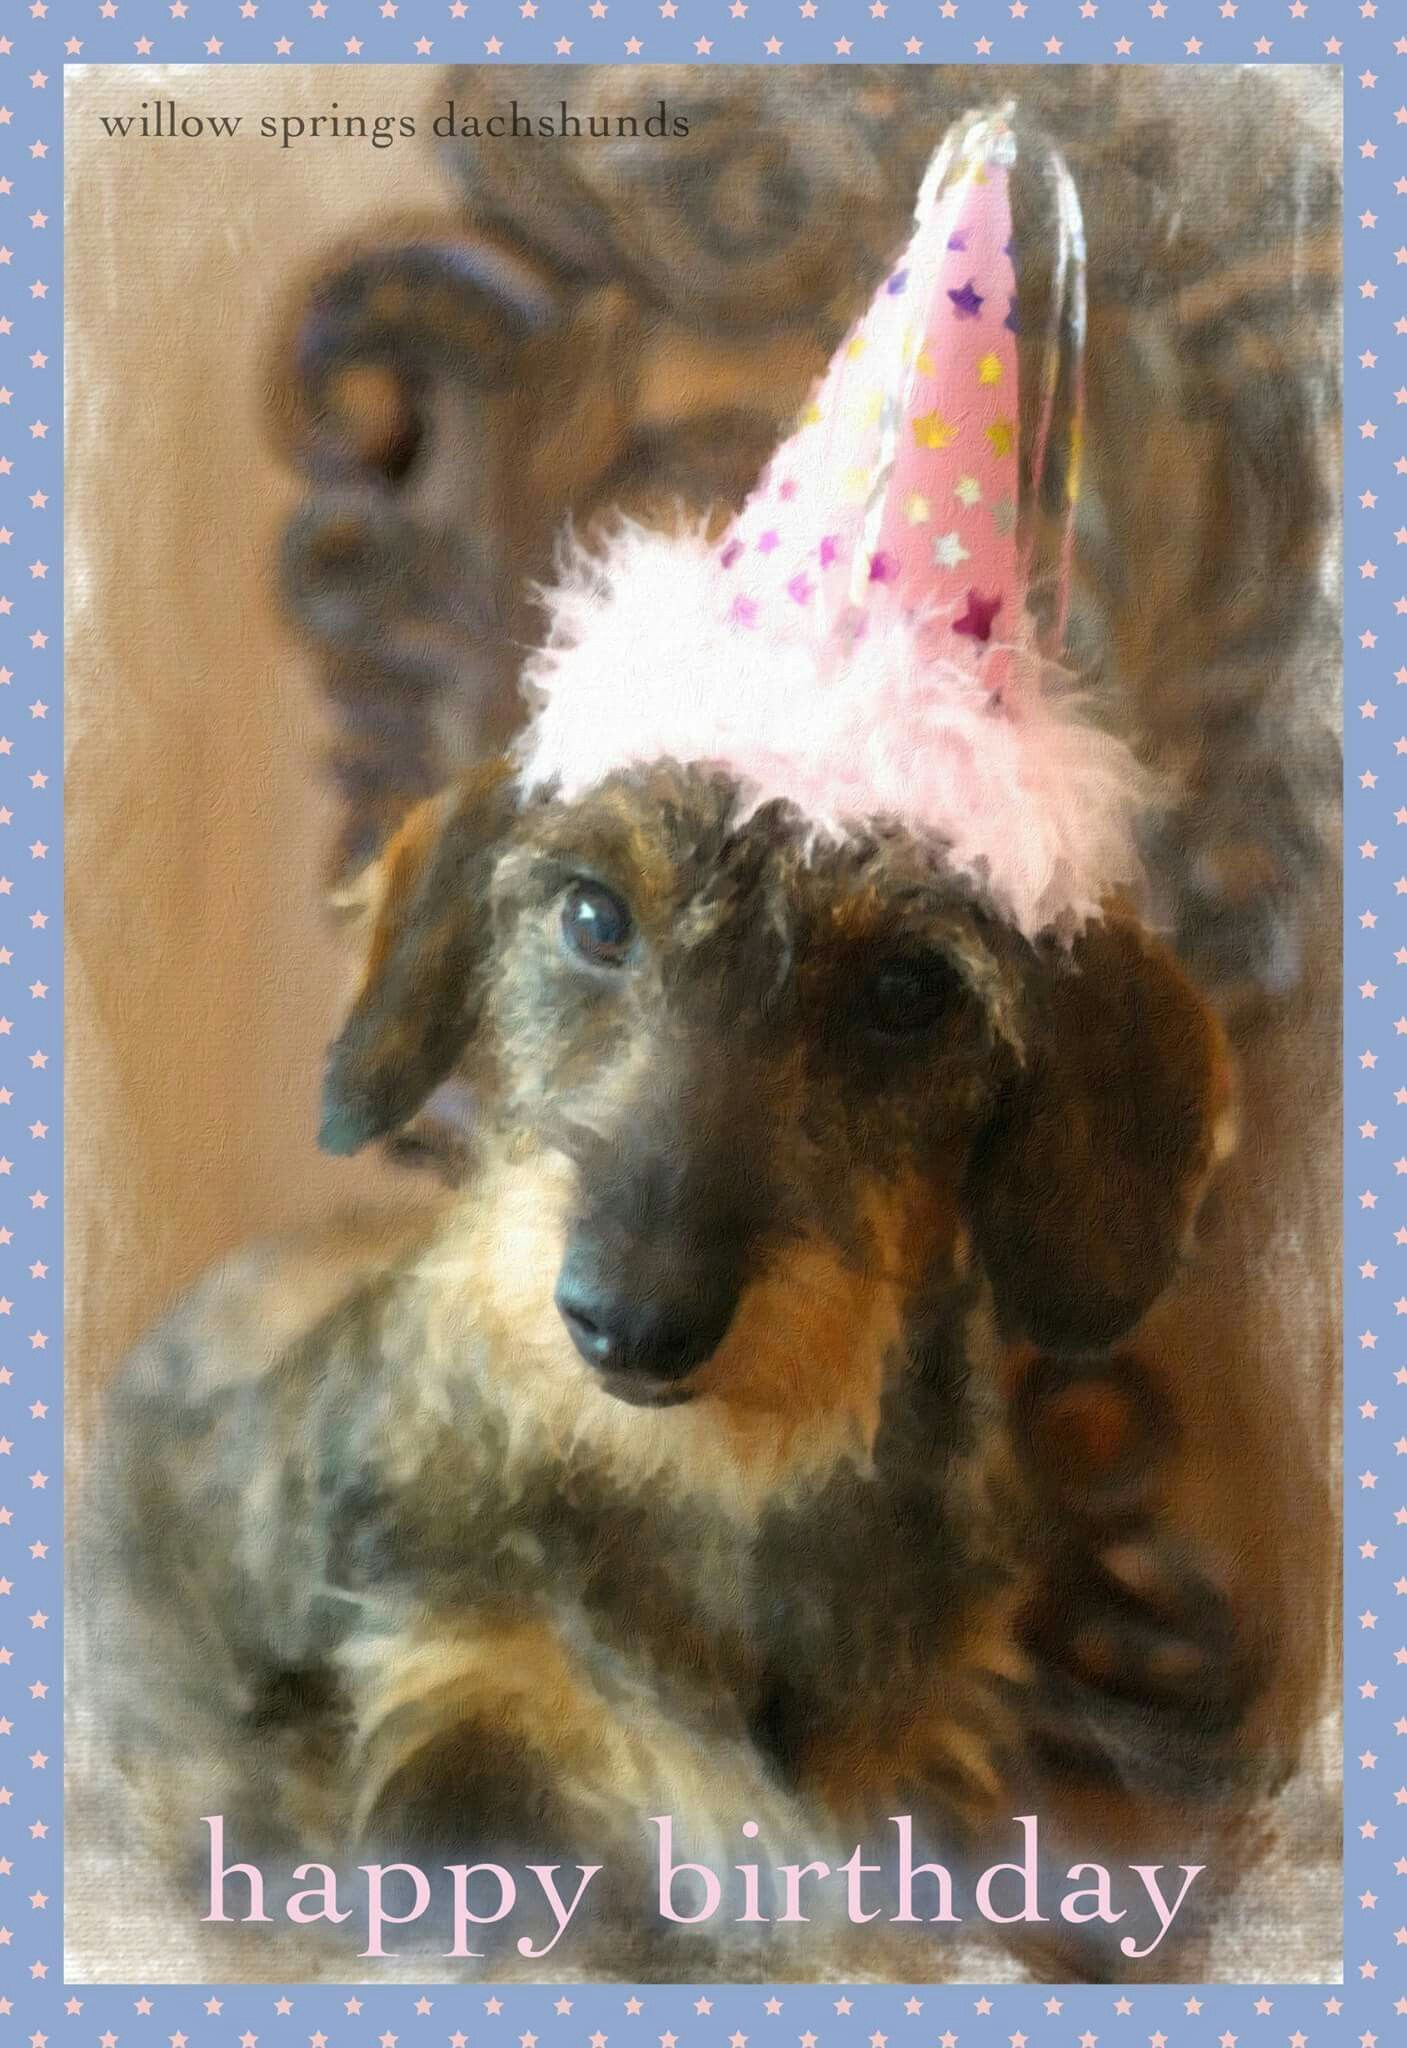 Birthday wirehaired zi de natere pinterest dachshunds birthday wirehaired kristyandbryce Choice Image